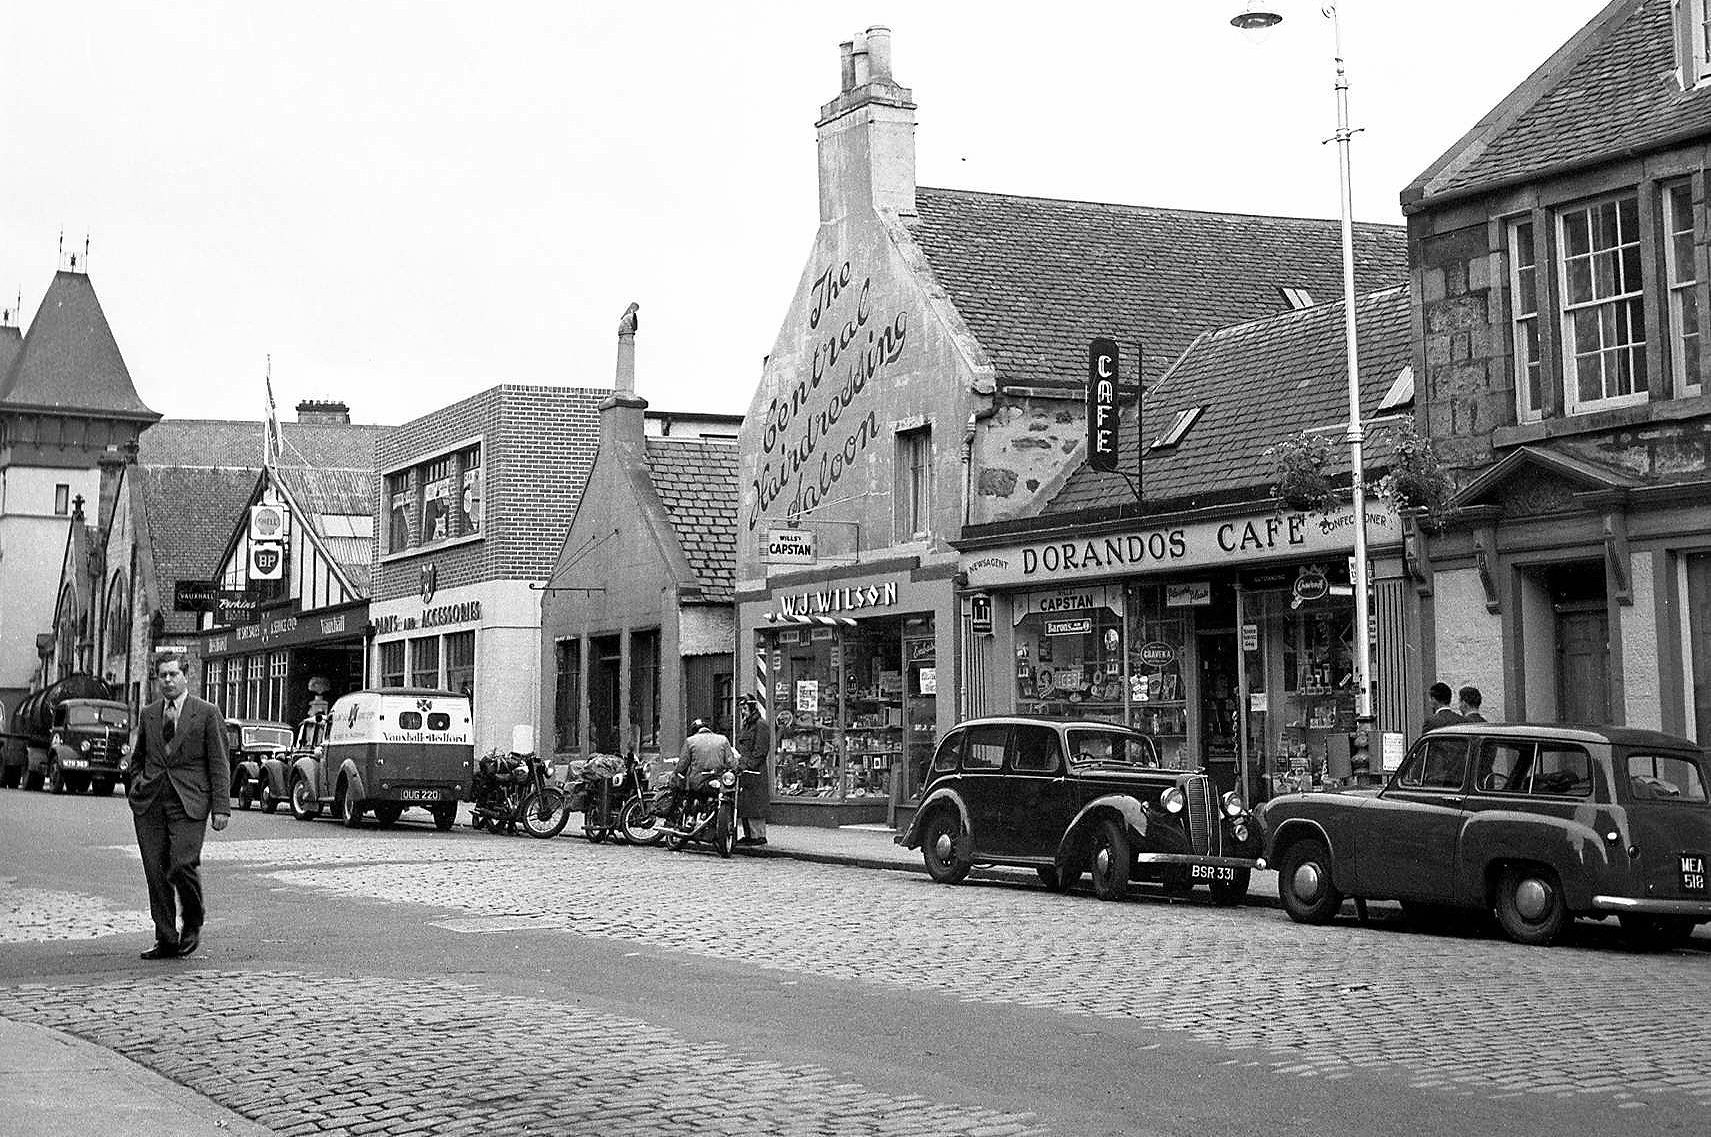 Academy Street shop fronts in 1956